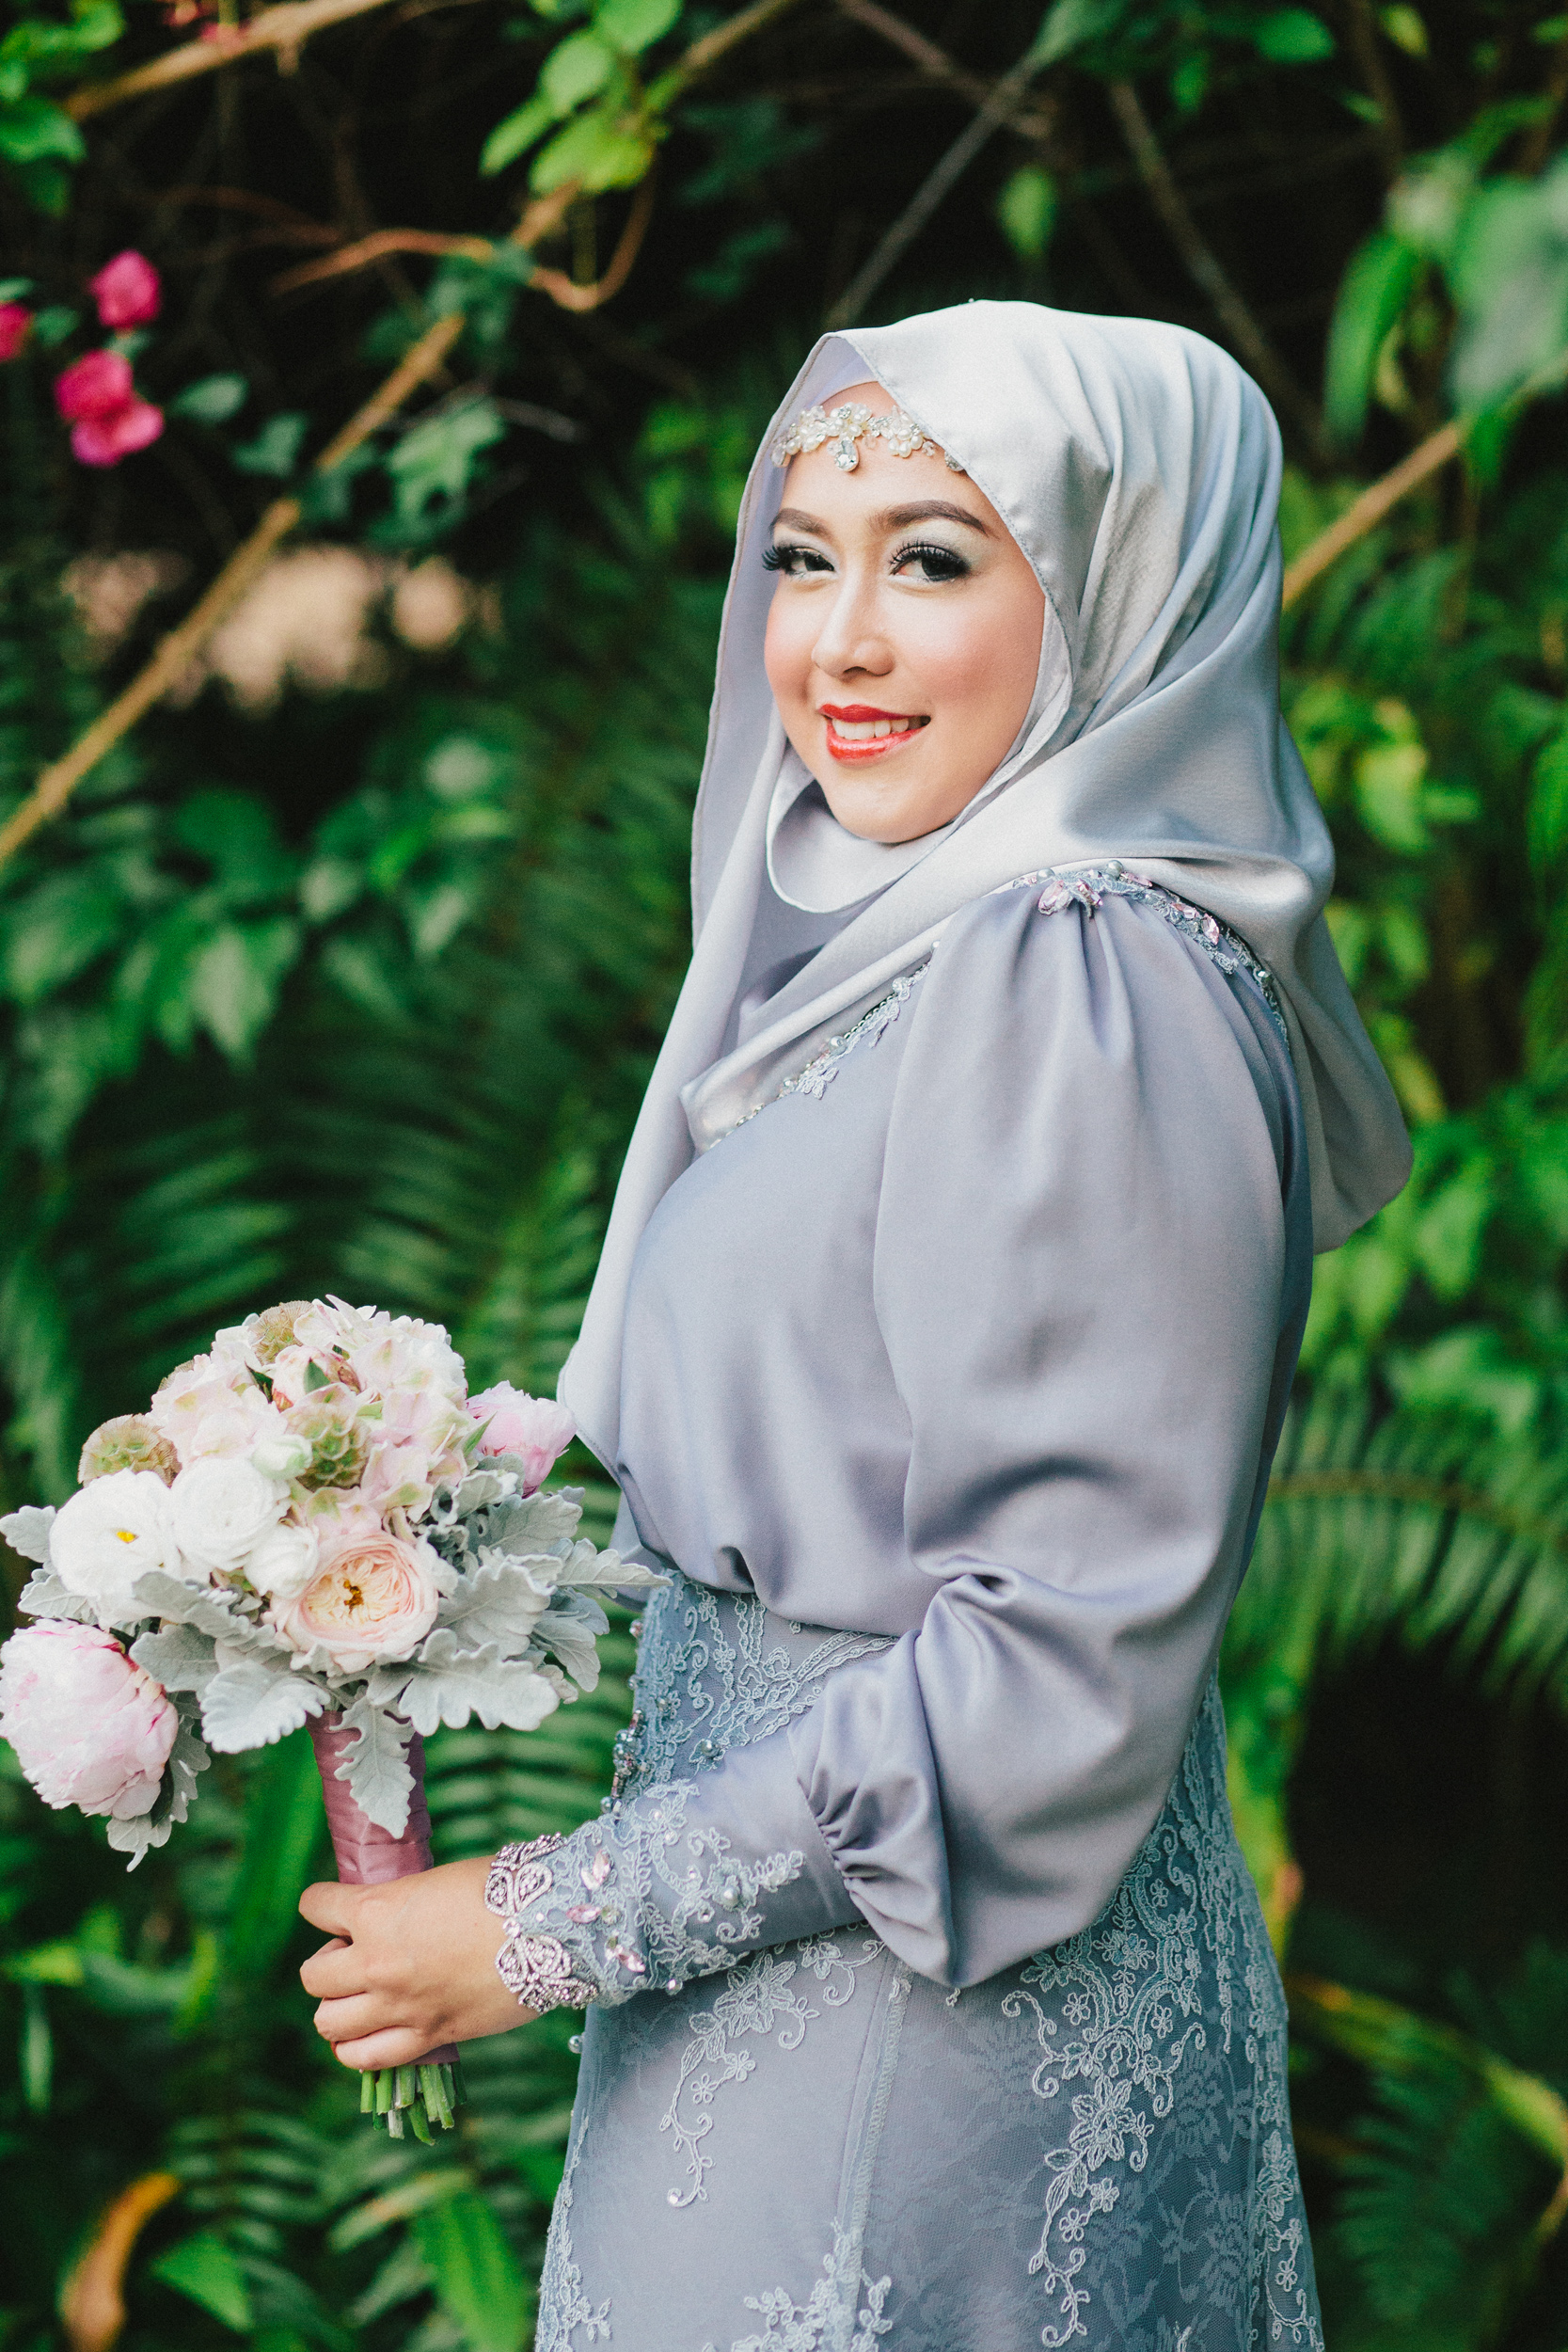 singapore-wedding-photographer-wemadethese-aisyah-helmi-65.jpg